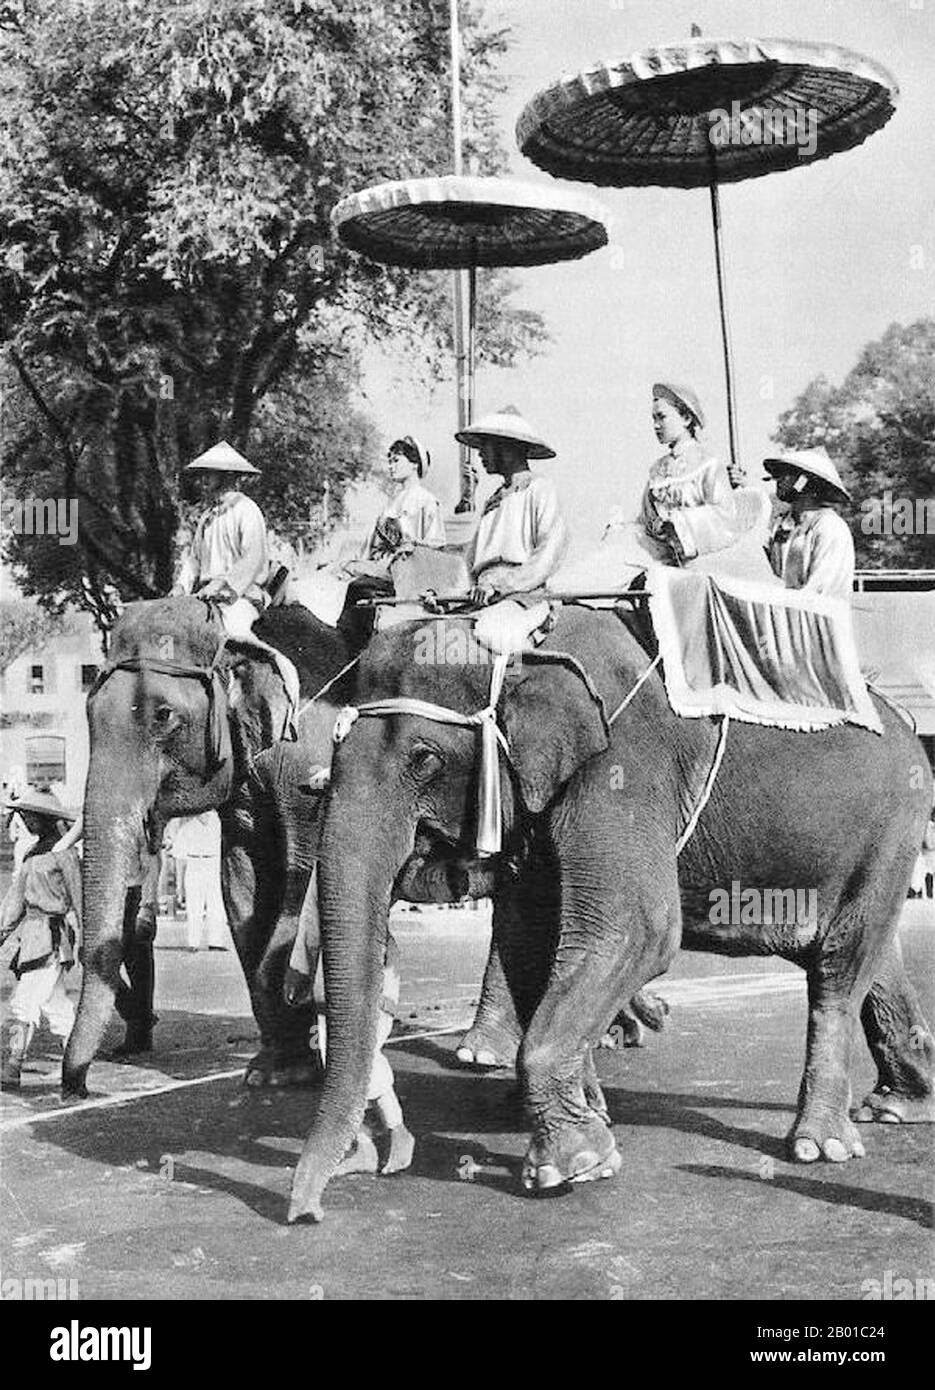 Two Vietnamese women on elephant back represent the celebrated Trung Sisters (Hai Ba Trung) in the annual Hai Ba Trung Parade, Saigon, 26 April 1957.  The Trưng Sisters (c. 12 - AD 43), known in Vietnamese as Hai Bà Trưng (literally 'the two Trưng Ladies'), and individually as Trưng Trắc and Trưng Nhị, were two first century Vietnamese women leaders who successfully rebelled against Chinese Han-Dynasty rule for three years, and are regarded as national heroines of Vietnam.  The sisters were born in Northern Vietnam, the dates of their birth are unknown, but Trưng Trắc was older than Trưng Nhị. Stock Photo